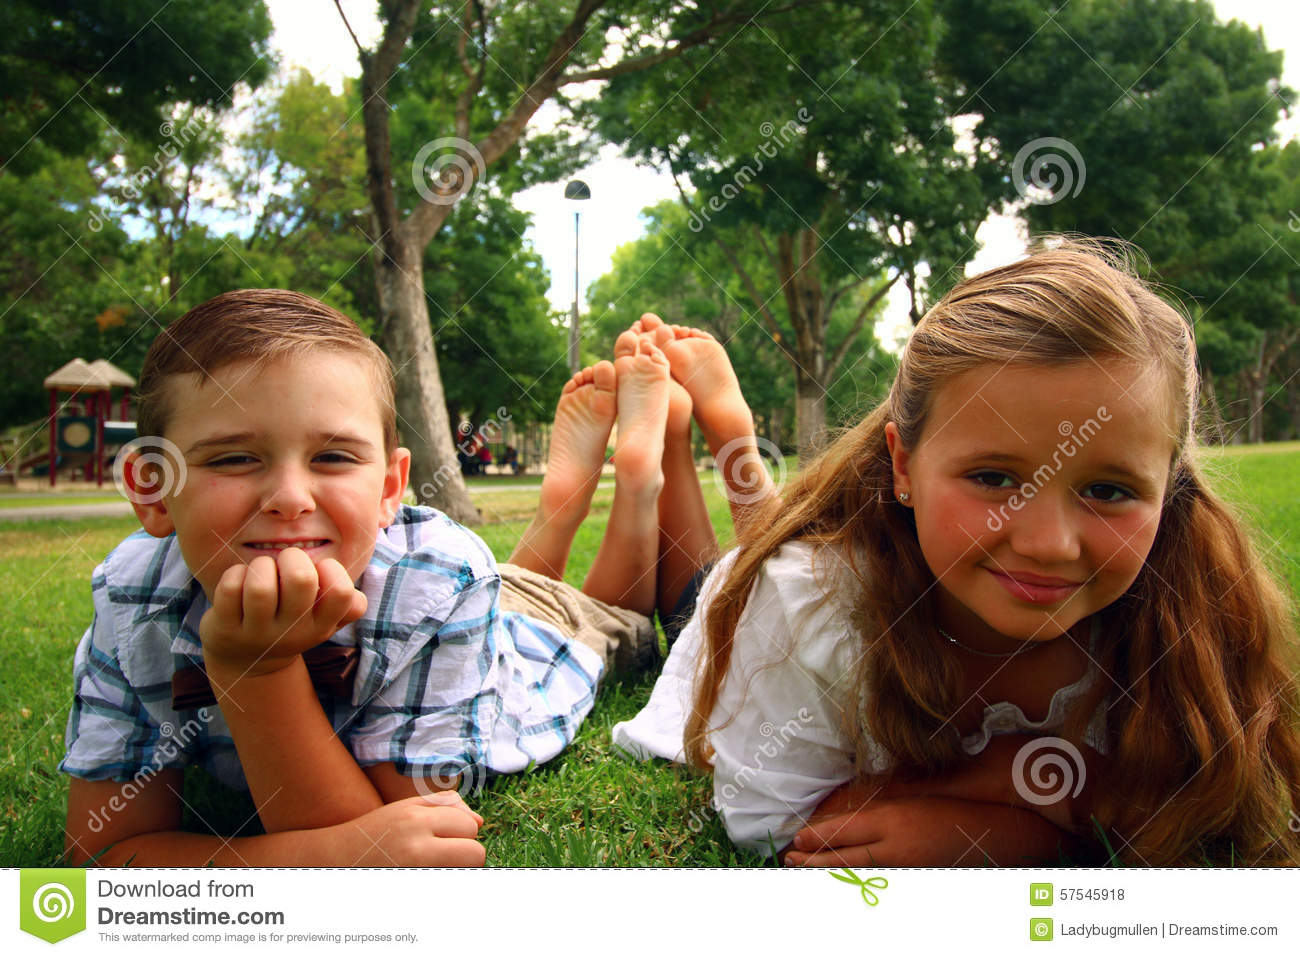 Https Www Dreamstime Com Stock Photo Childrens Feet Twins Sitting Together Their Up Center Image57545918